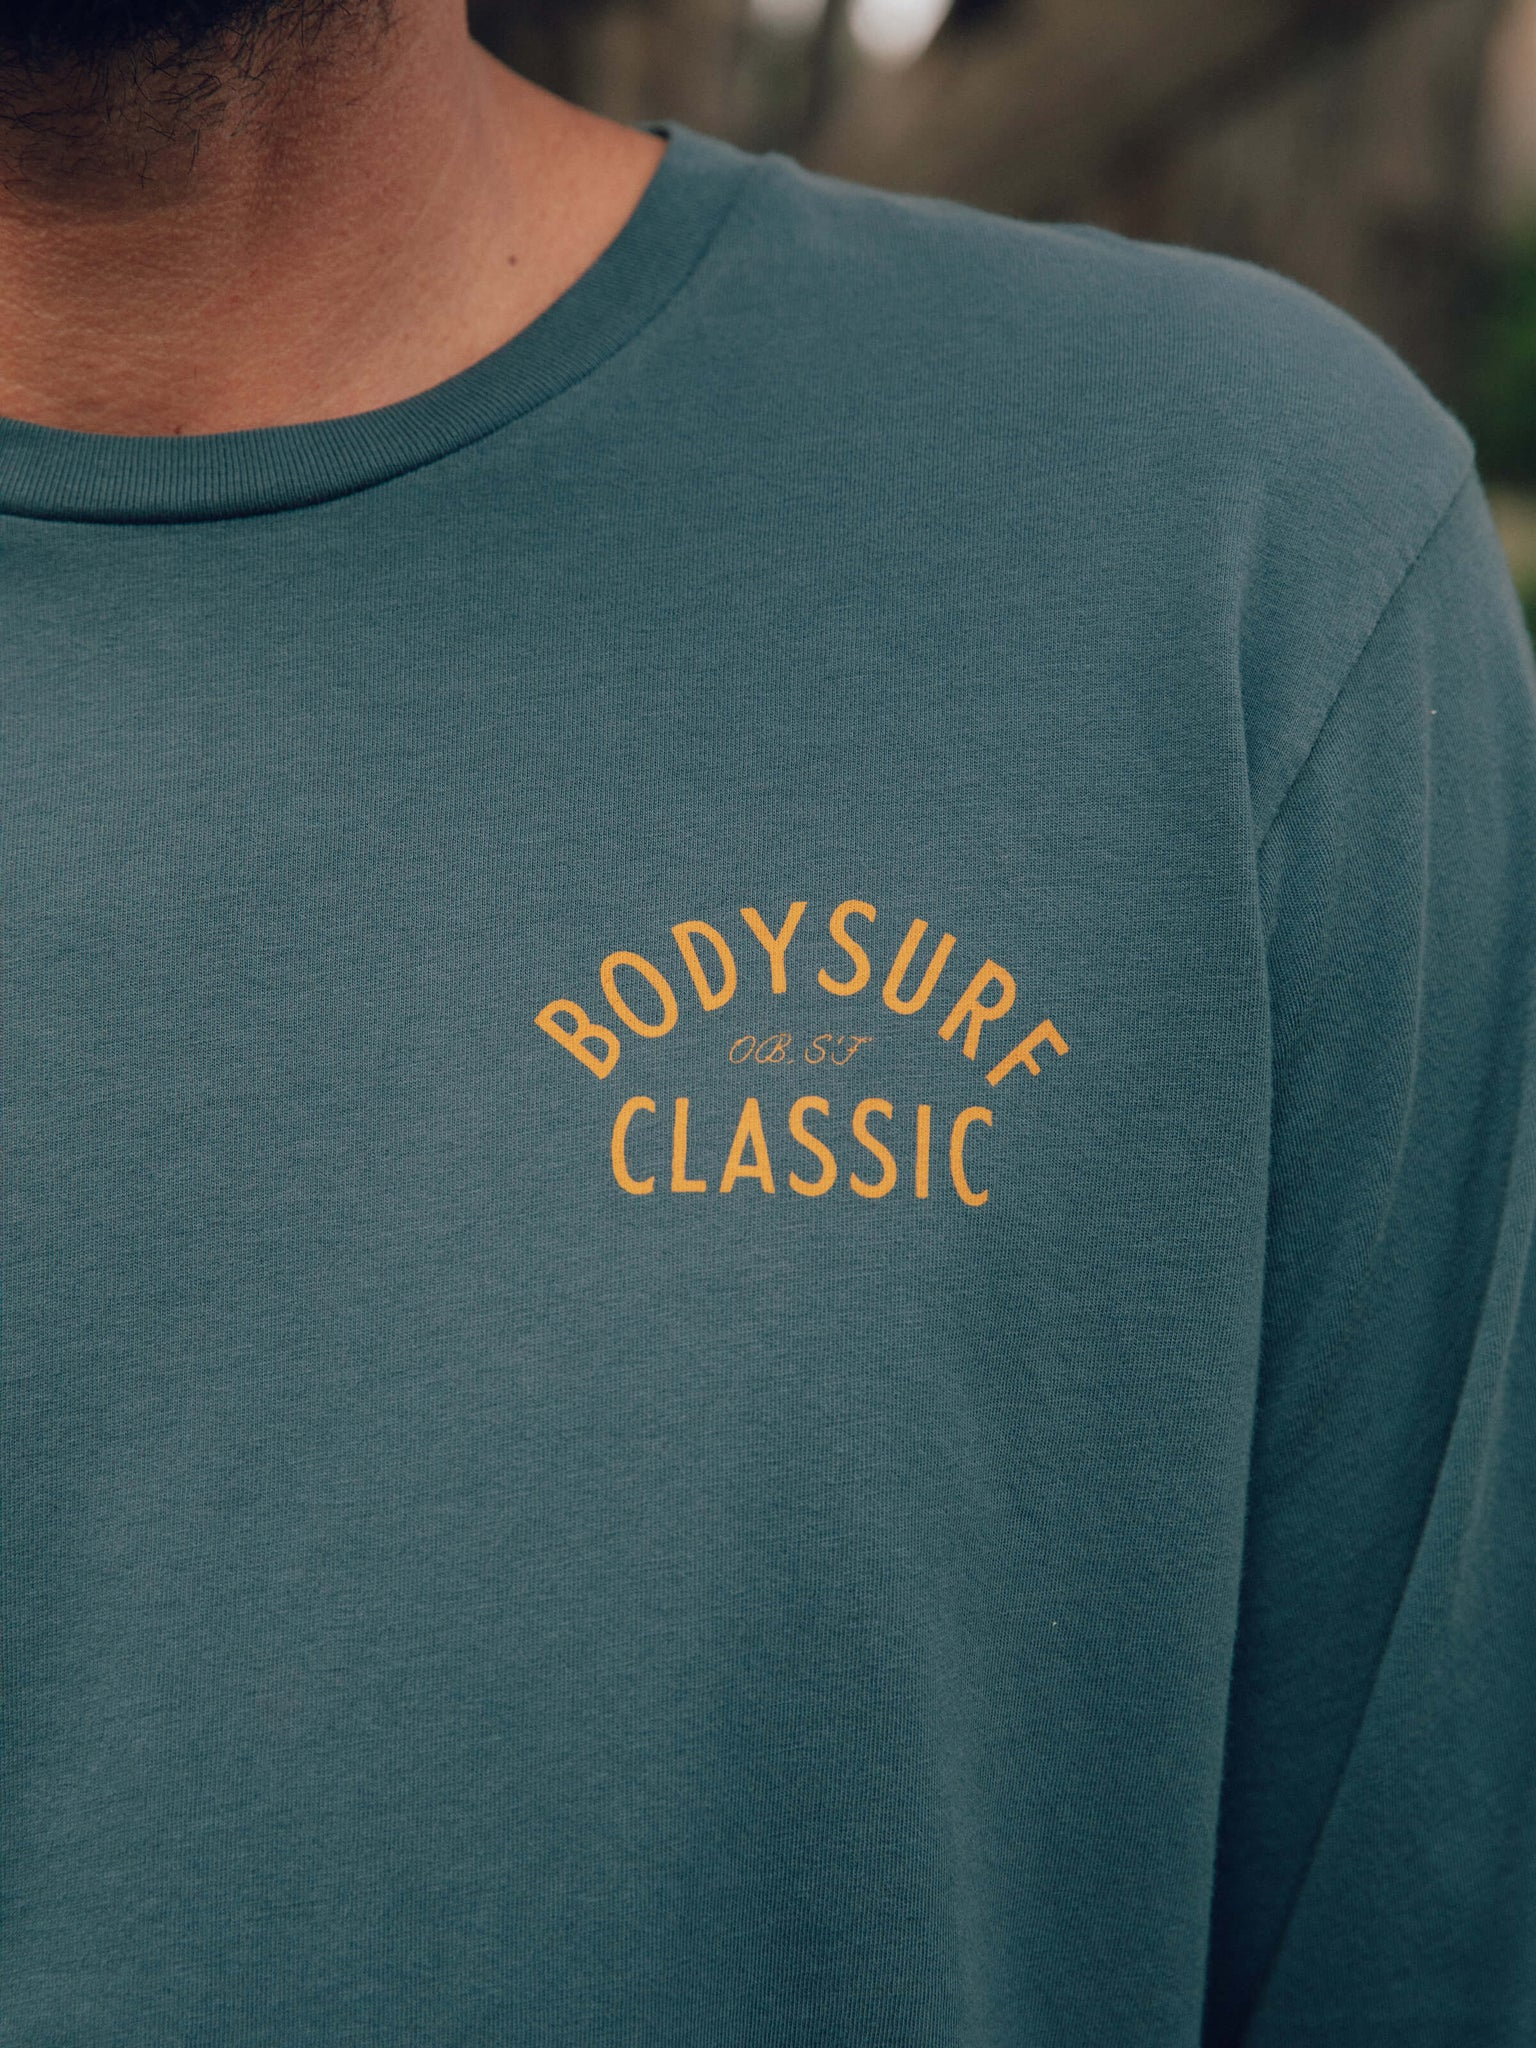 Body Surf Classic Long Sleeve